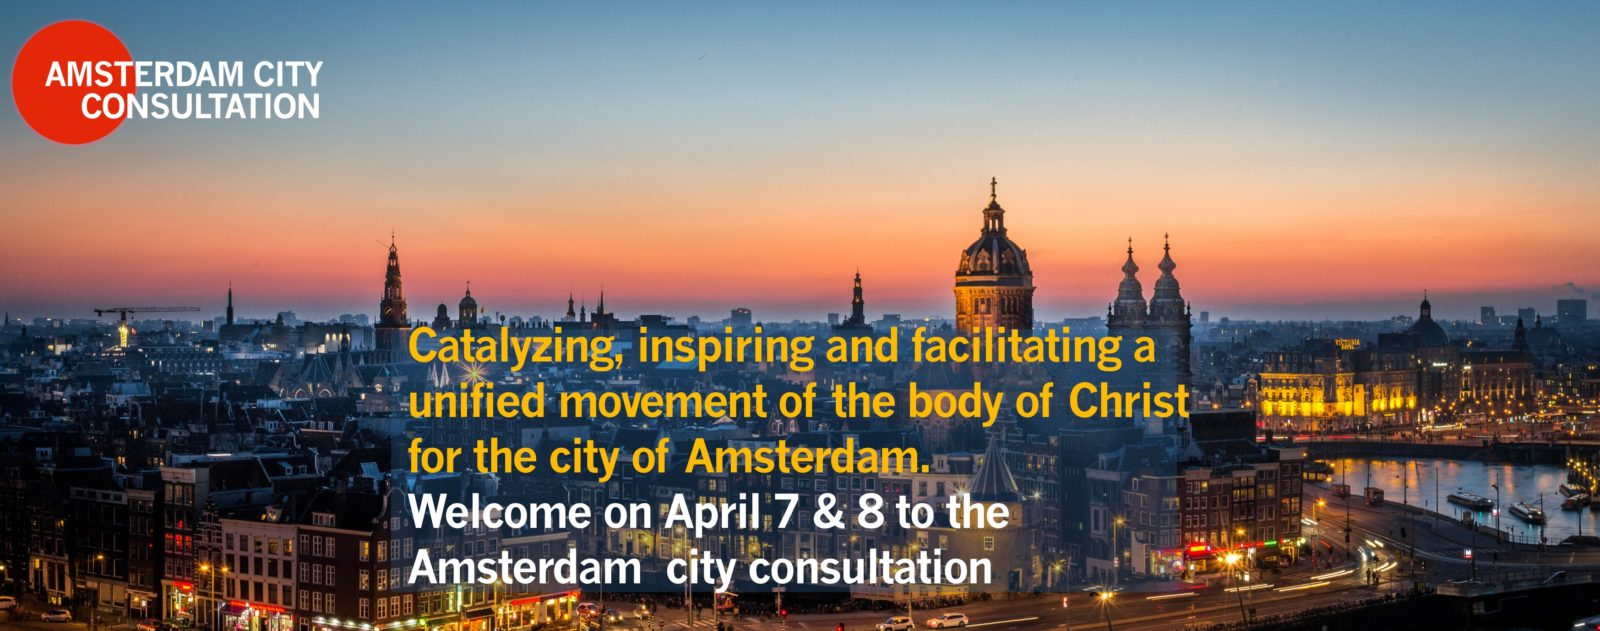 amsterdam-city-consultation-banner-text